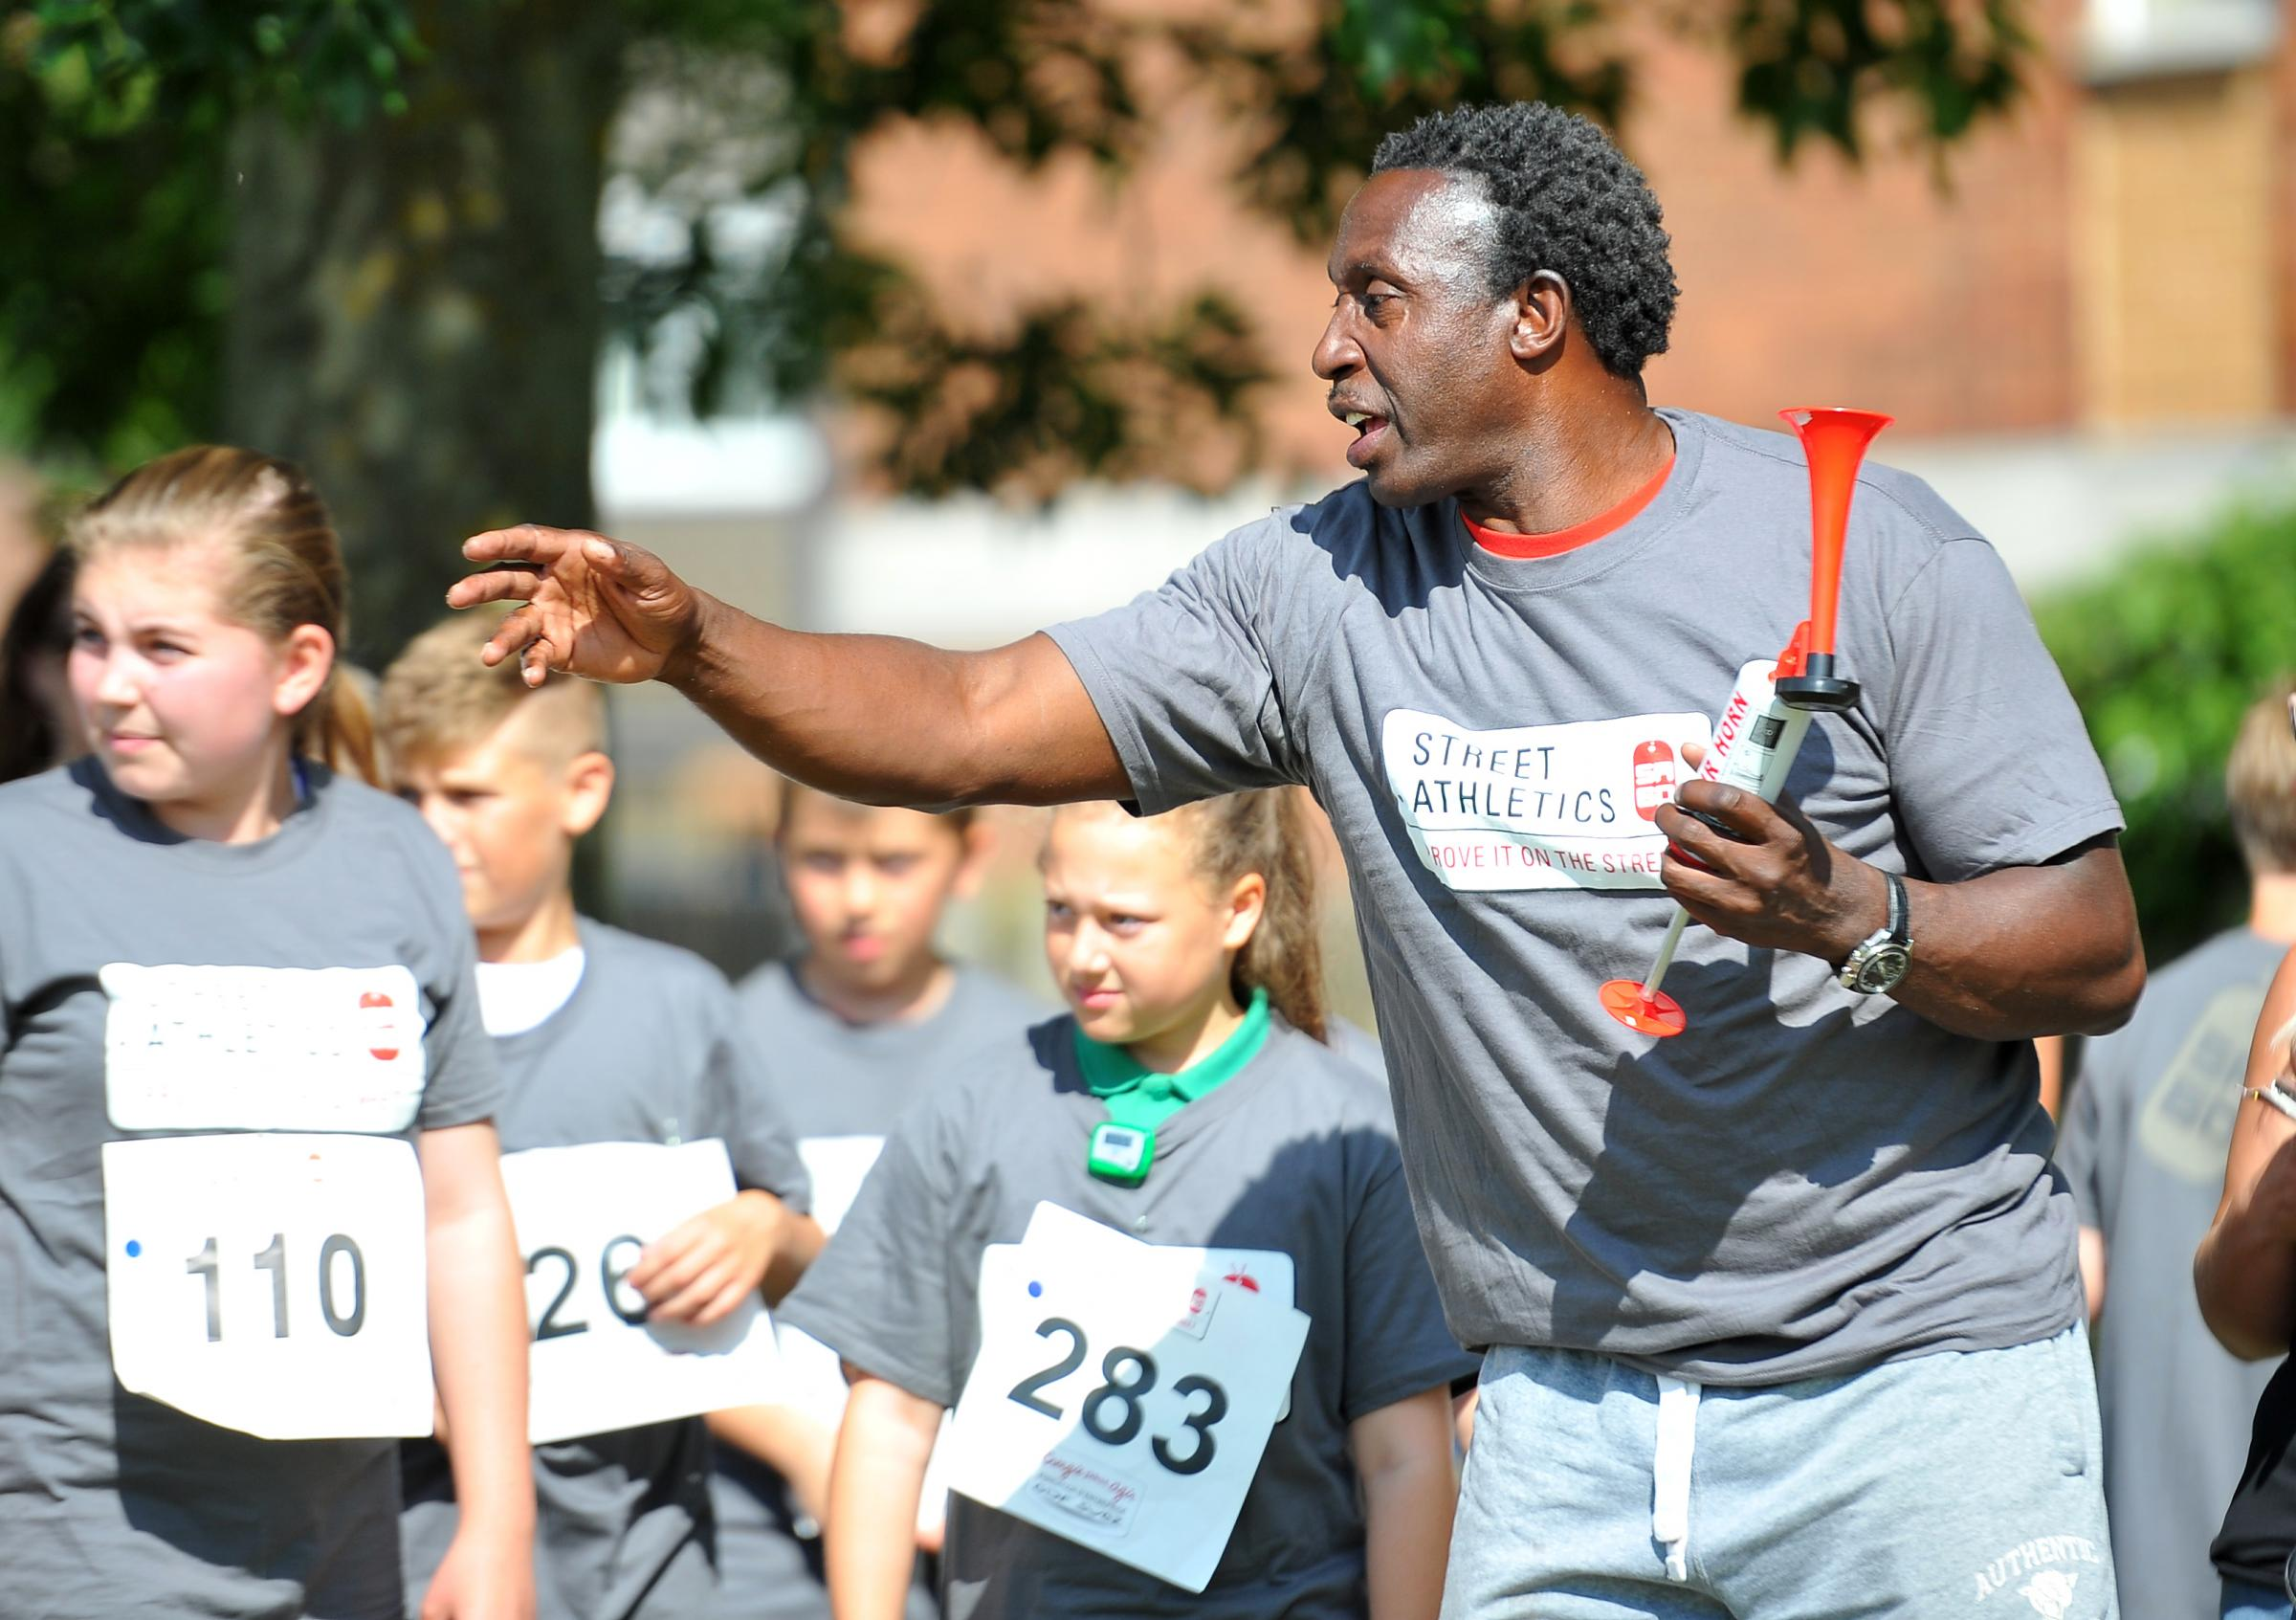 SPEAKER: Olympic champion Linford Christie will be the guest speaker at the South Wales Argus Sports Awards